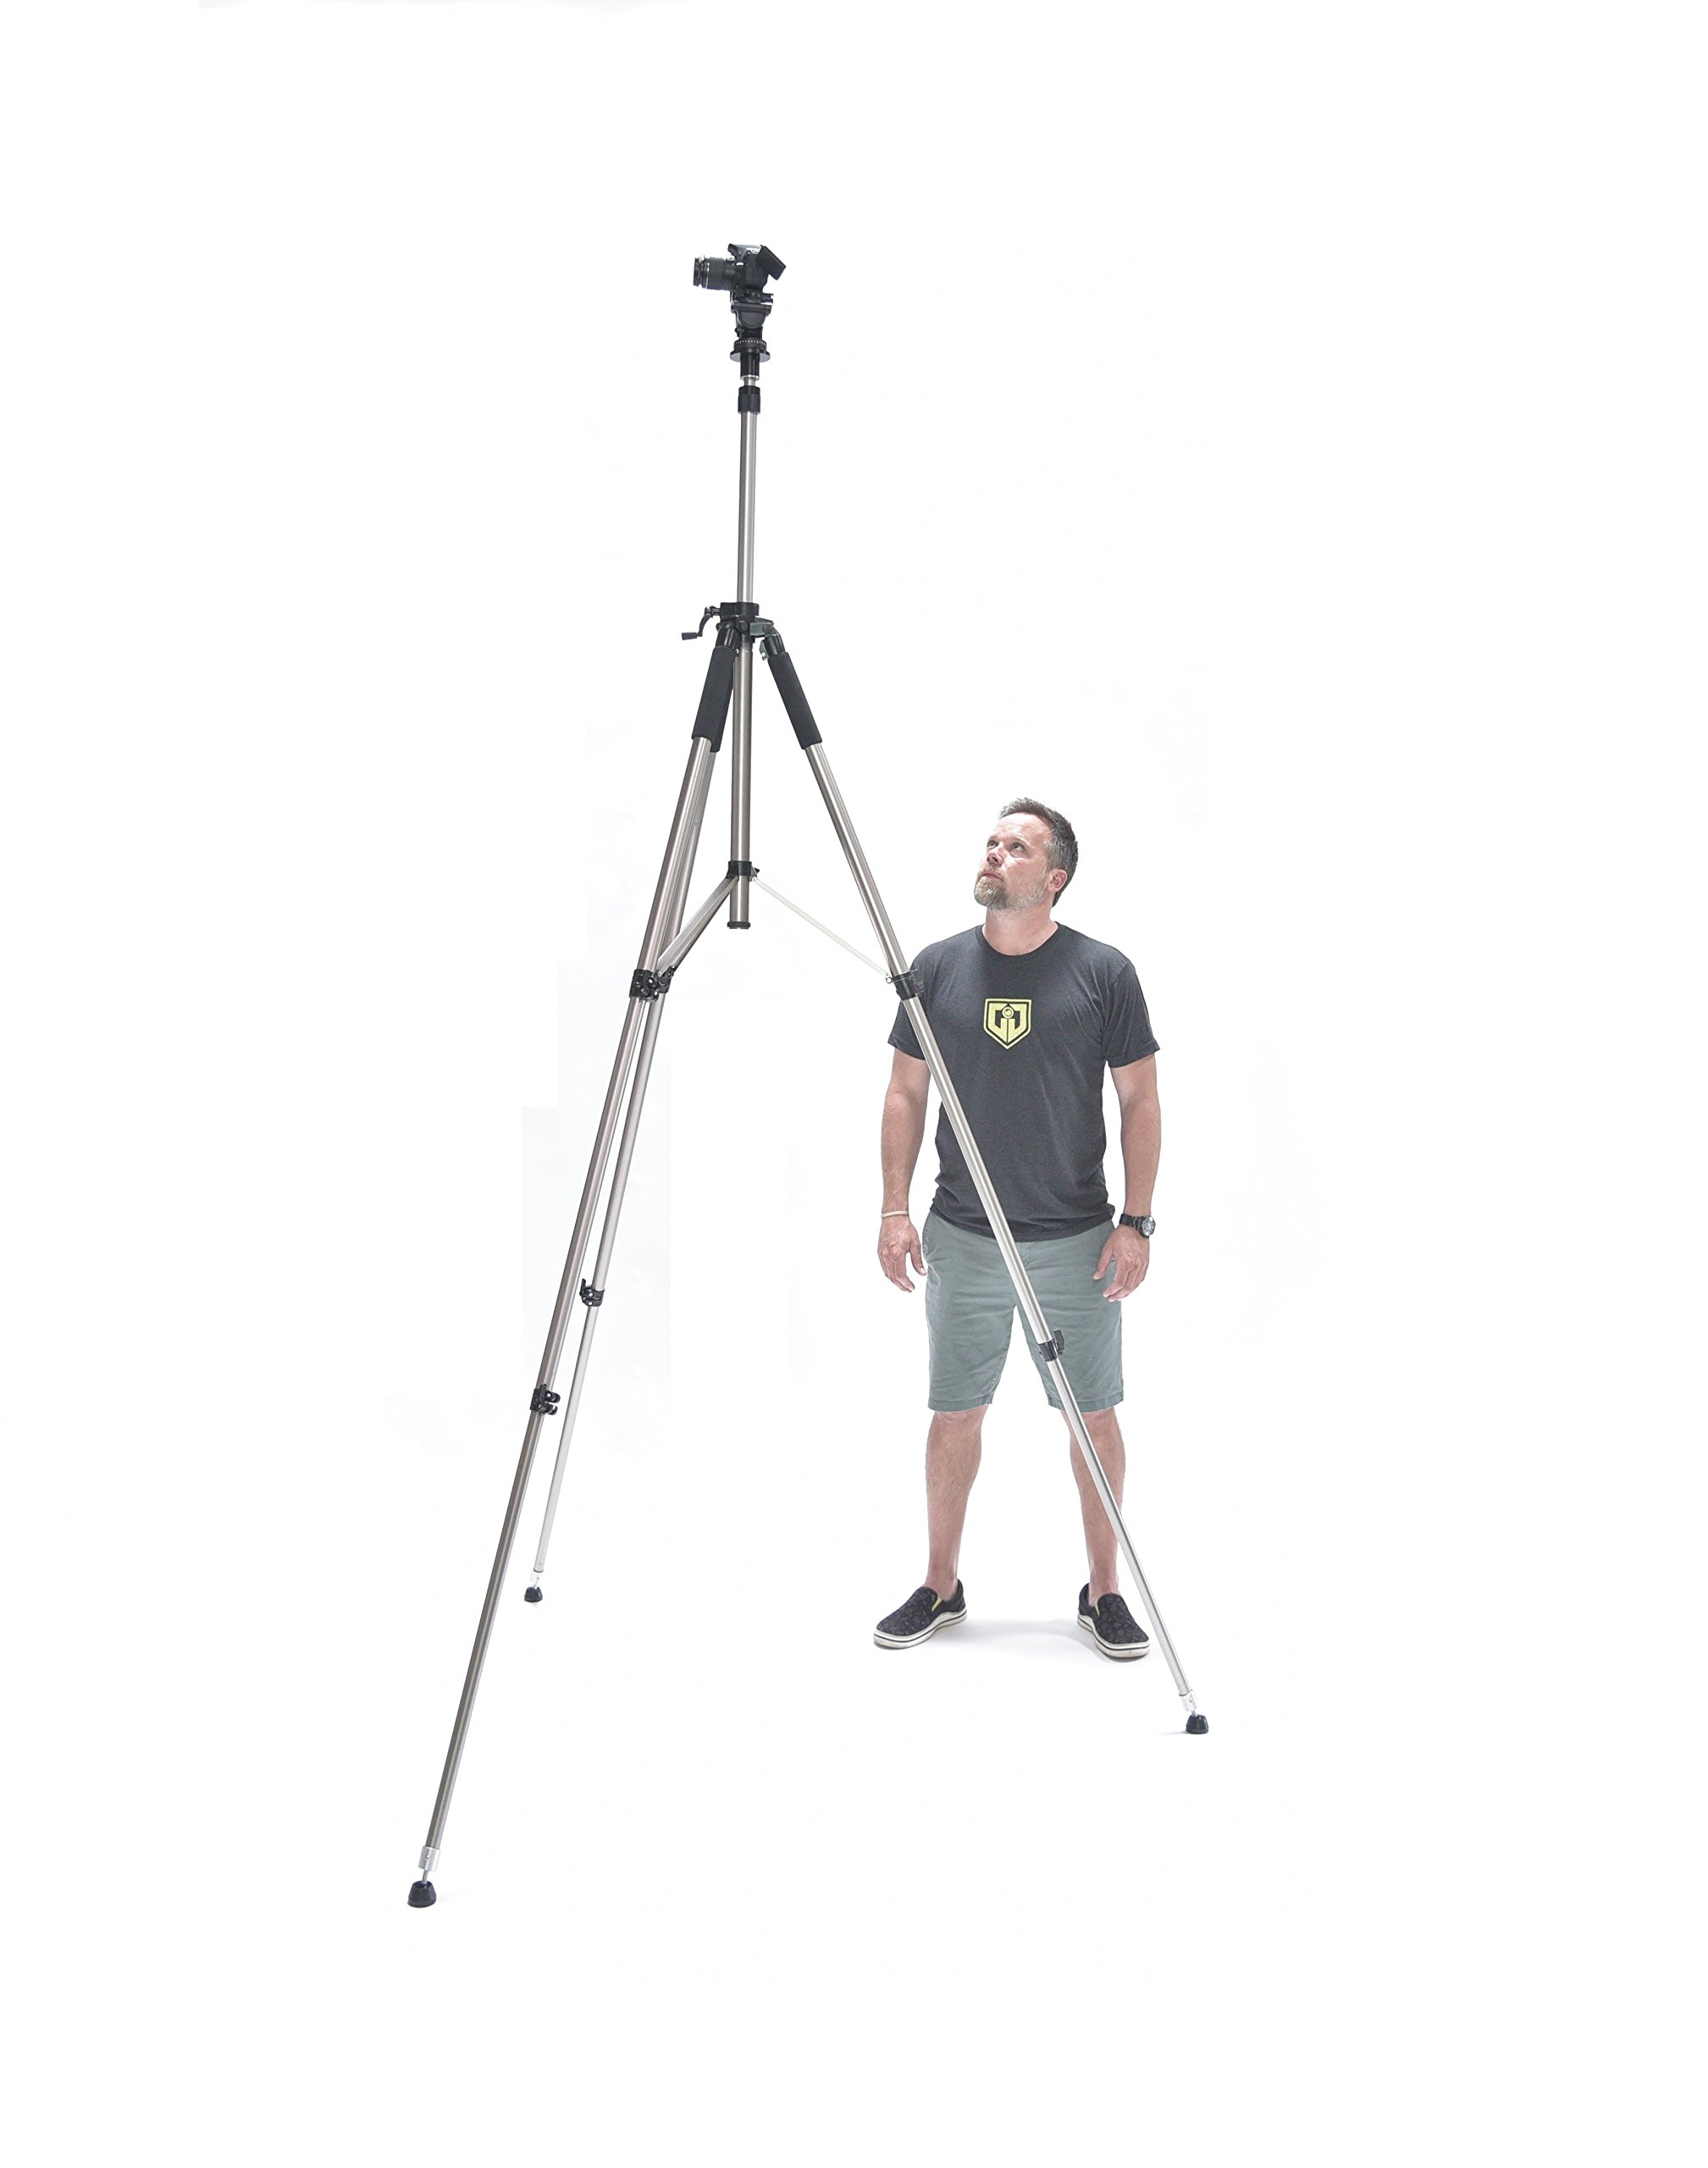 Glide Gear TST 100 Very Tall Sports Soccer Real Estate 120'' Video Camera Photography 10 FT Tripod Stand